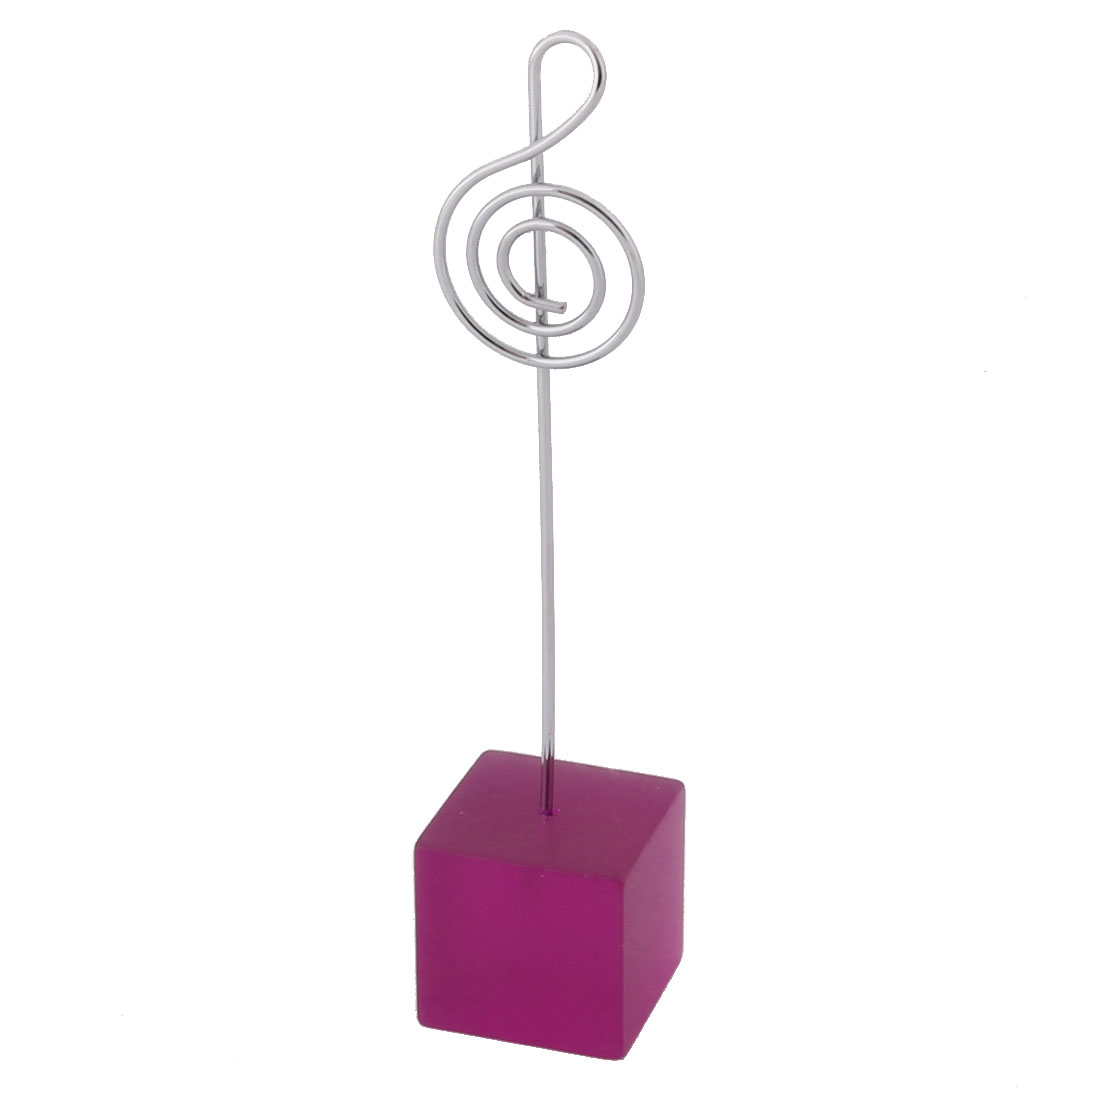 Household Office Resin Musical Note Shaped Tabletop Decoration Photo Memo Clip Fuchsia